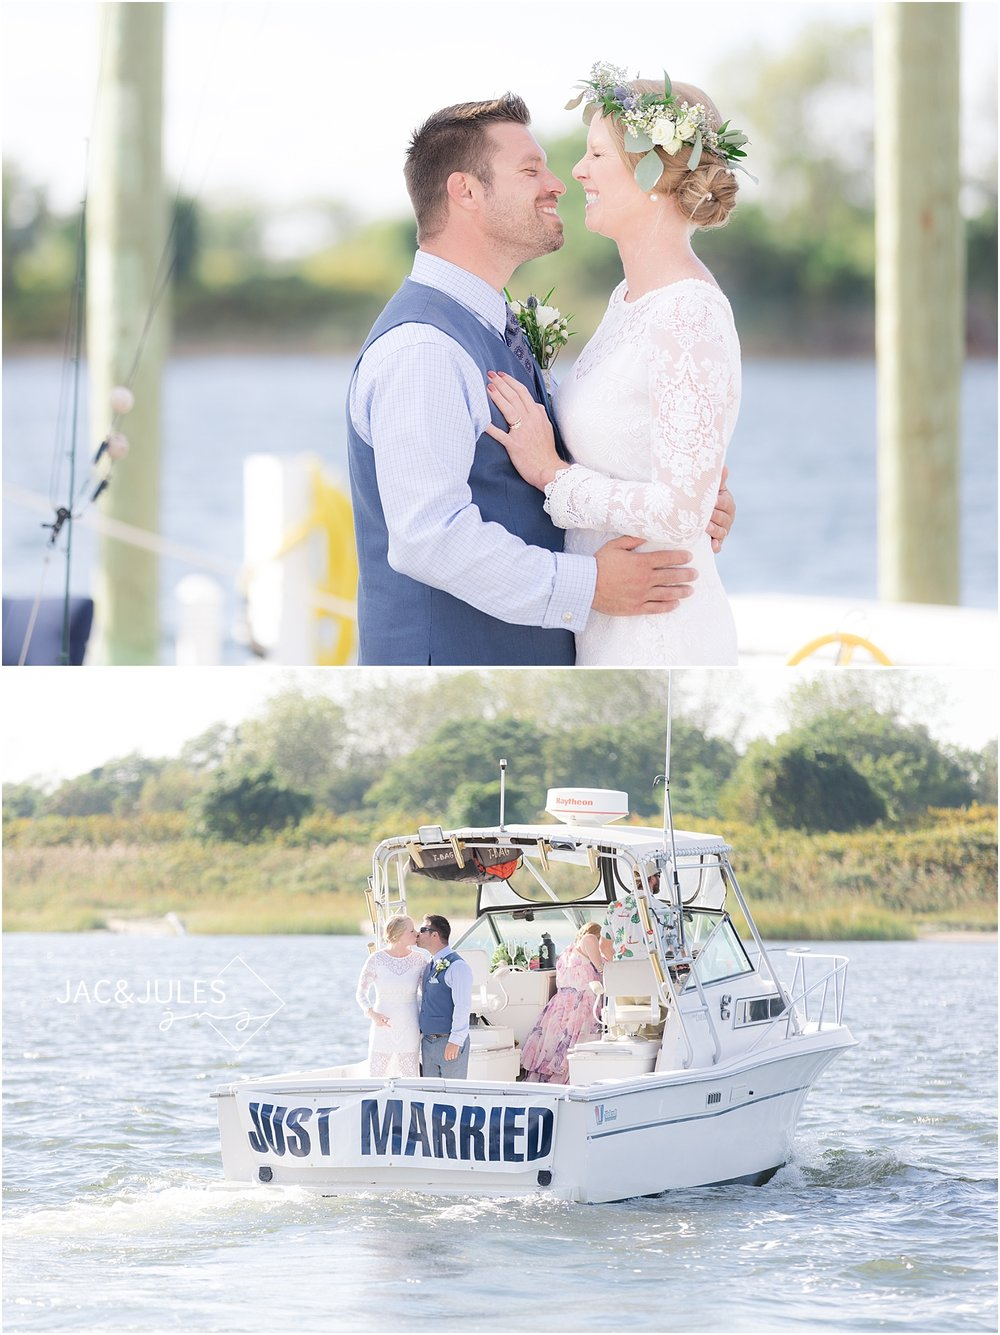 romantic wedding photos on a boat in shrewsbury nj